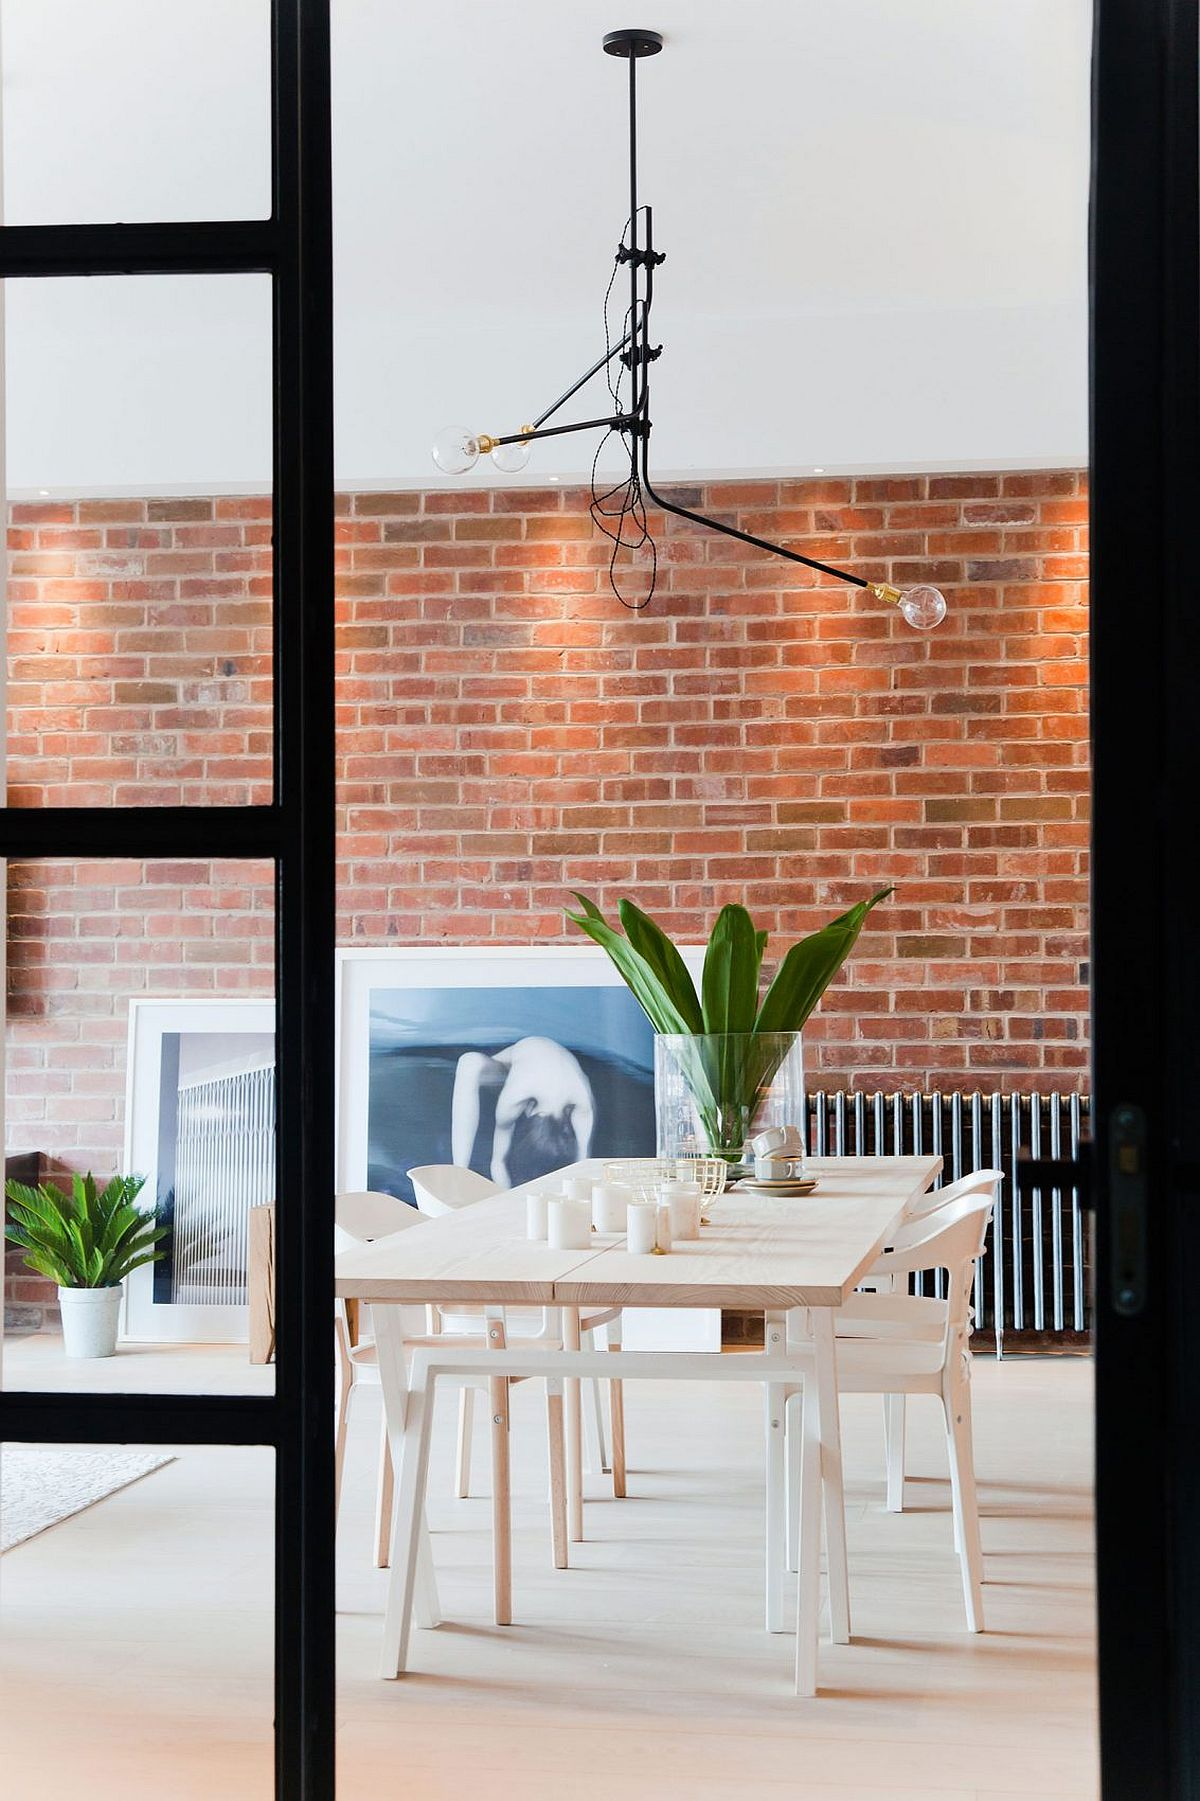 Dining area with industrial style sliding glass doors and brick wall backdrop